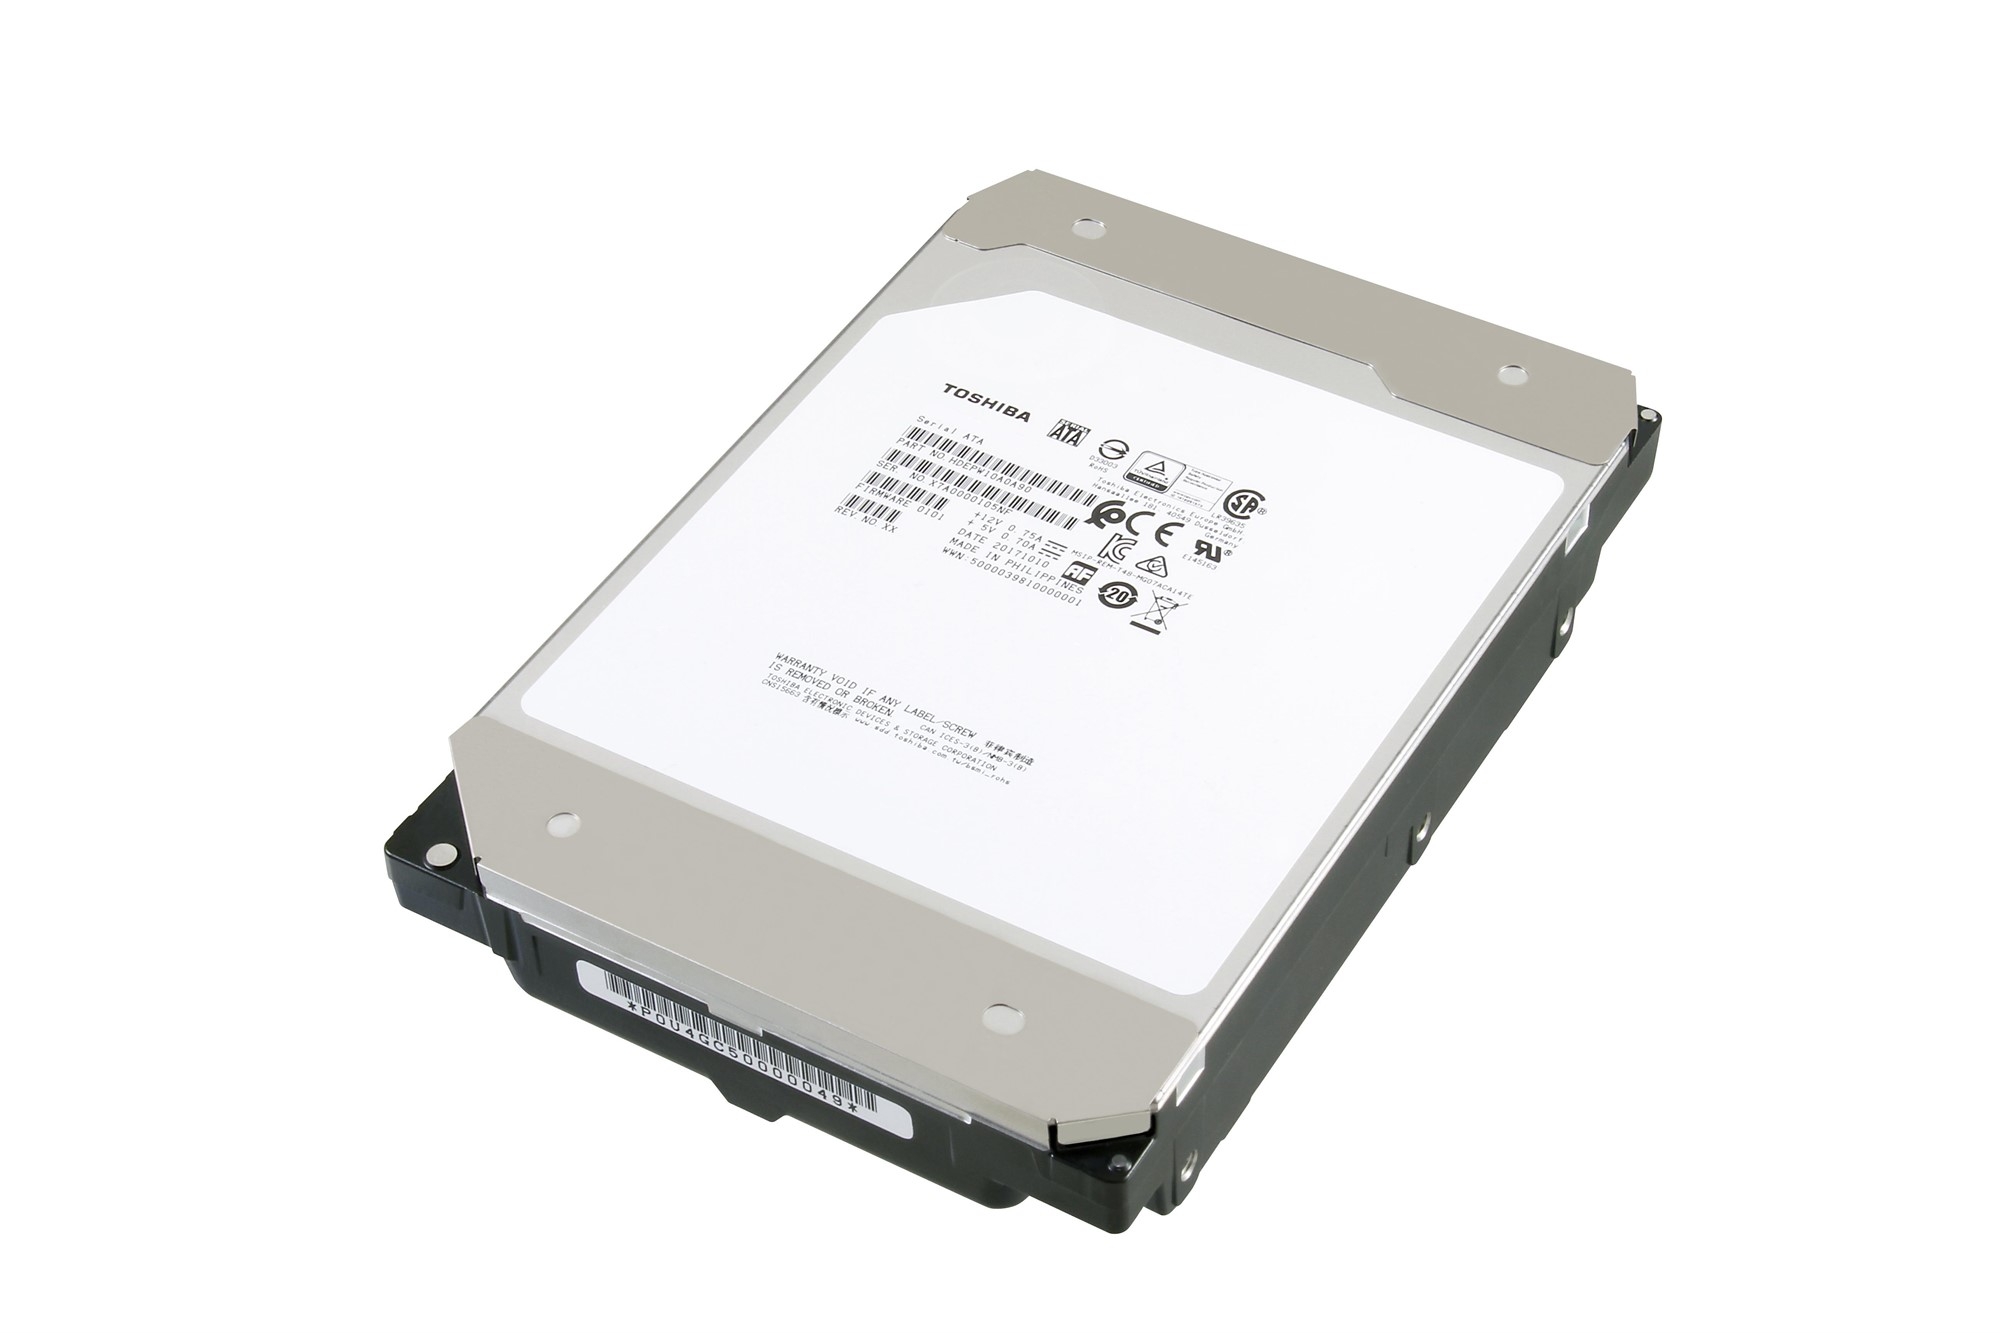 TOSHIBA MG07ACA12TE HDD 12000GB SERIAL ATA INTERNAL HARD DRIVE